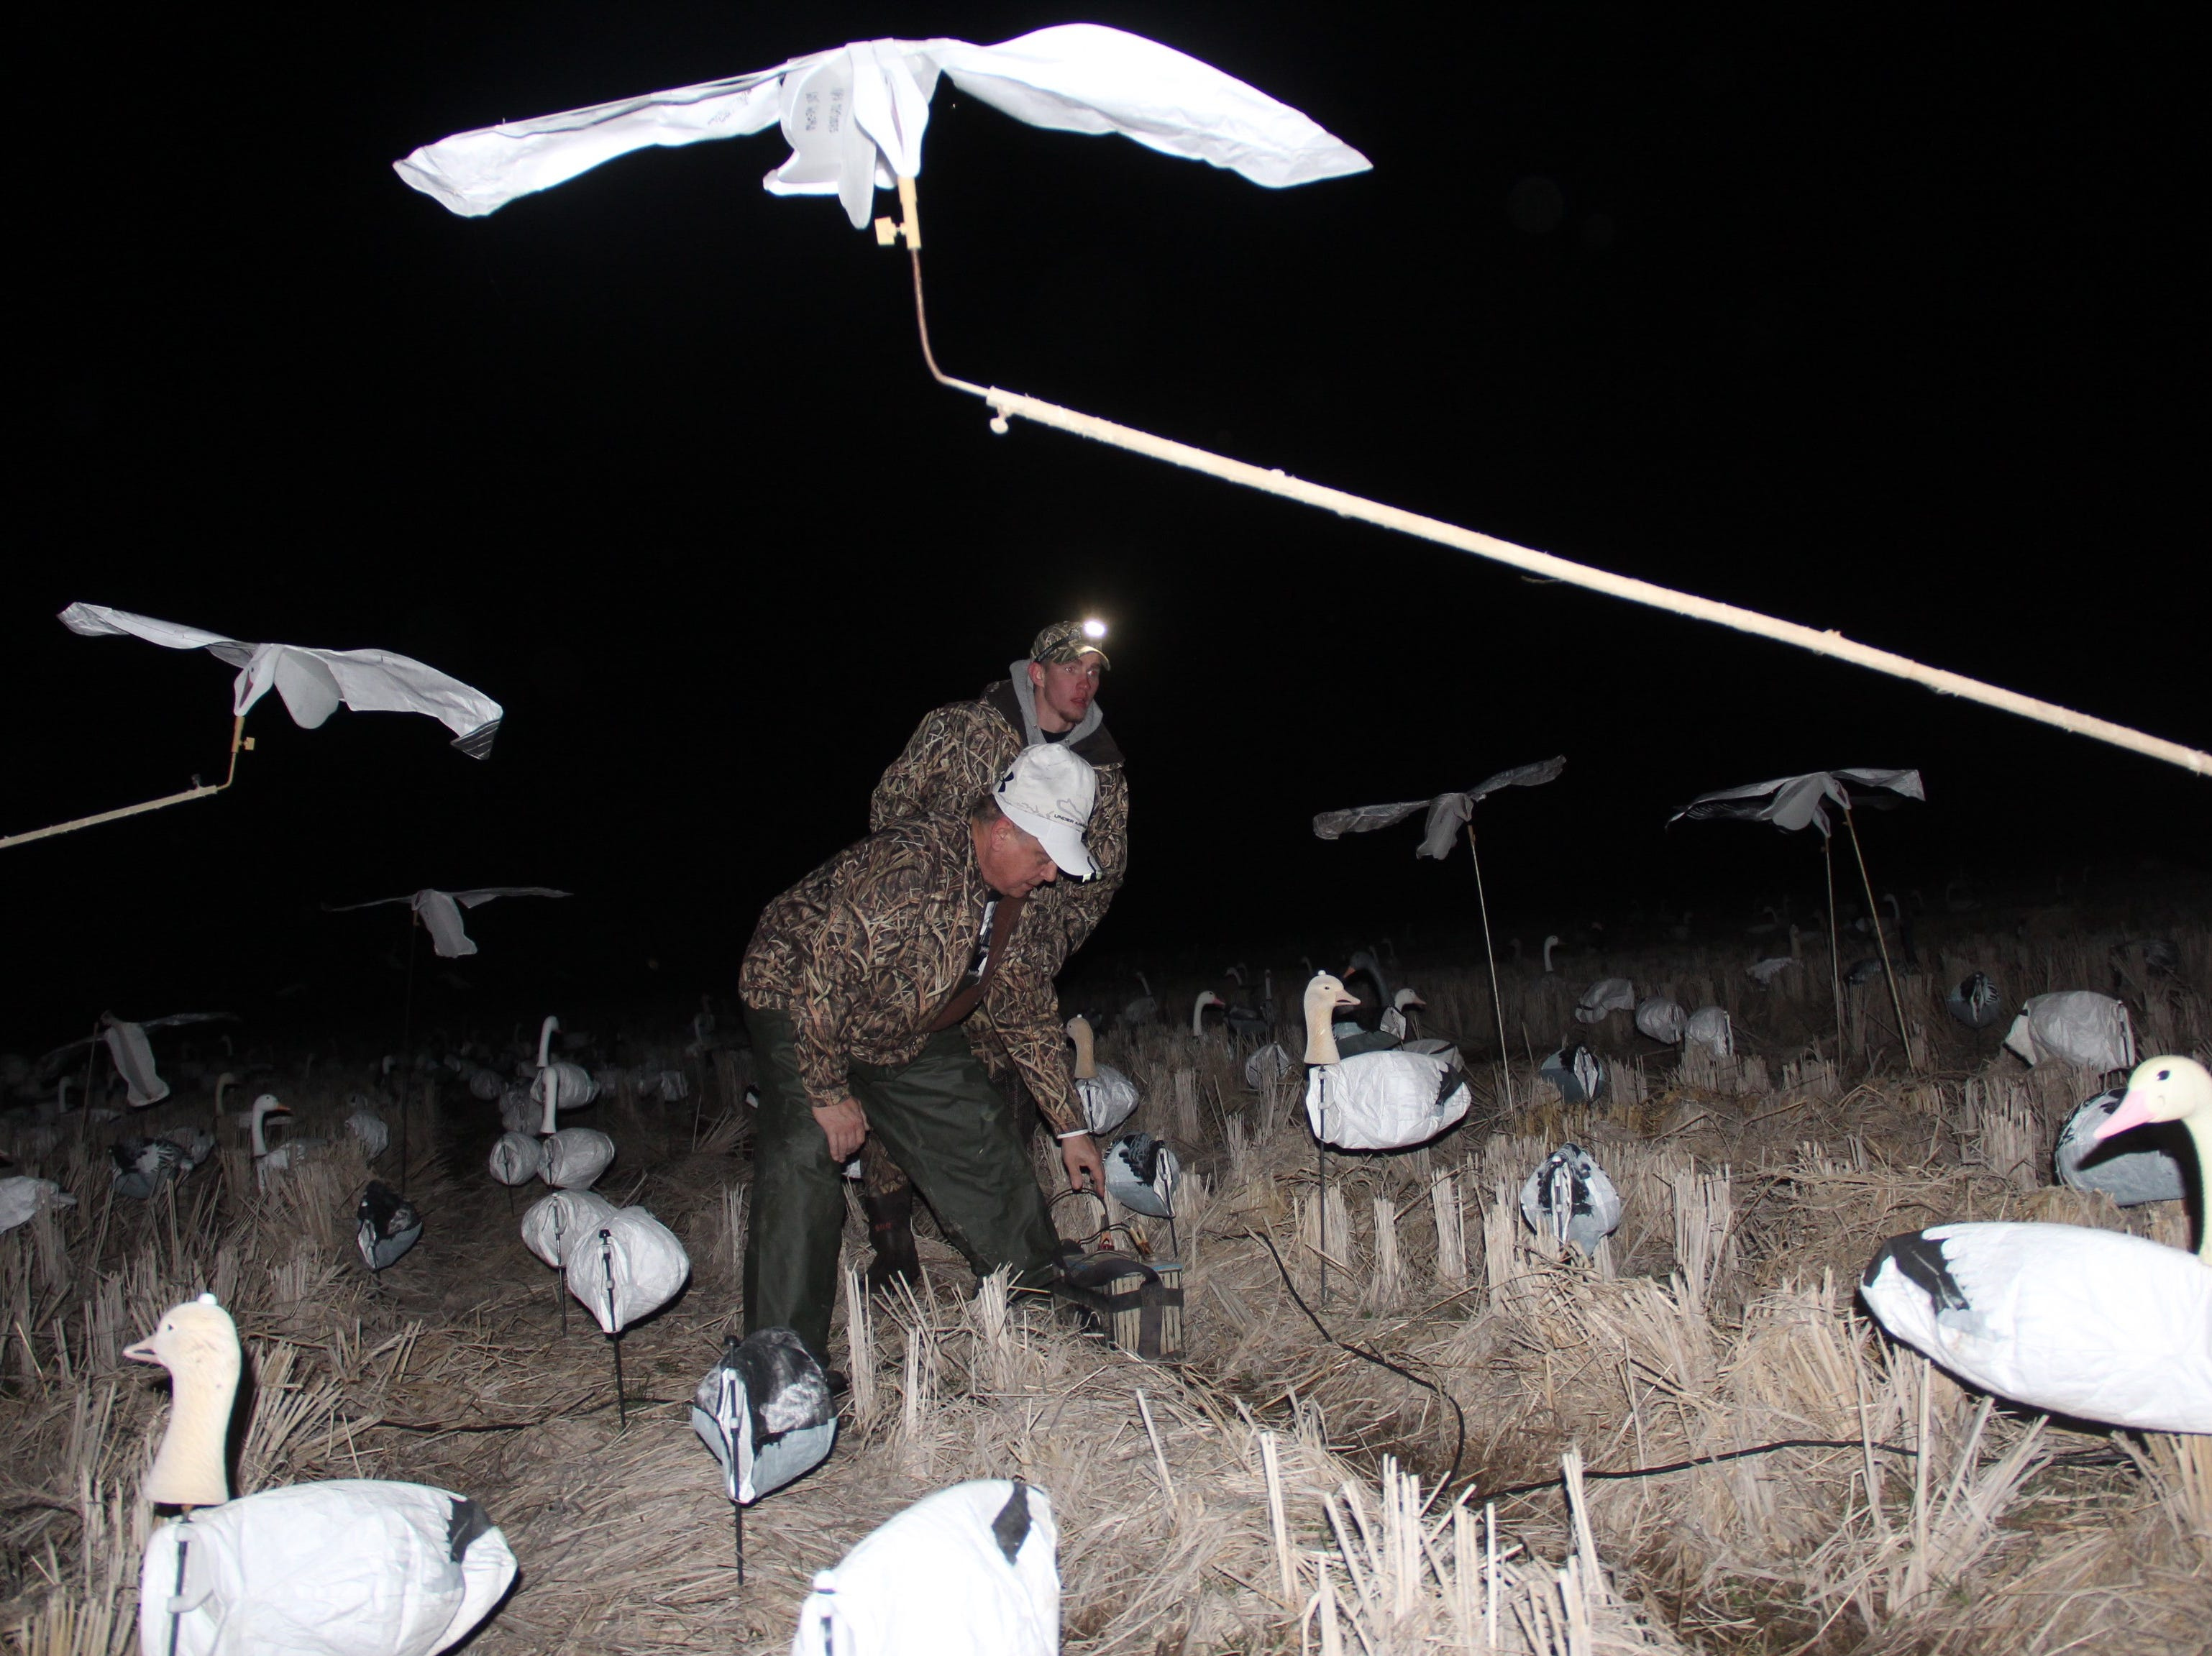 Pat Gerbensky of Genesee, Wisconsin (front) and Jake Lechner of East Troy, Wisconsin connect battery cables to a vortex decoy in a harvested rice field in northeastern Arkansas. The mechanical device spins white cloth decoys on long arms around a central pivot.